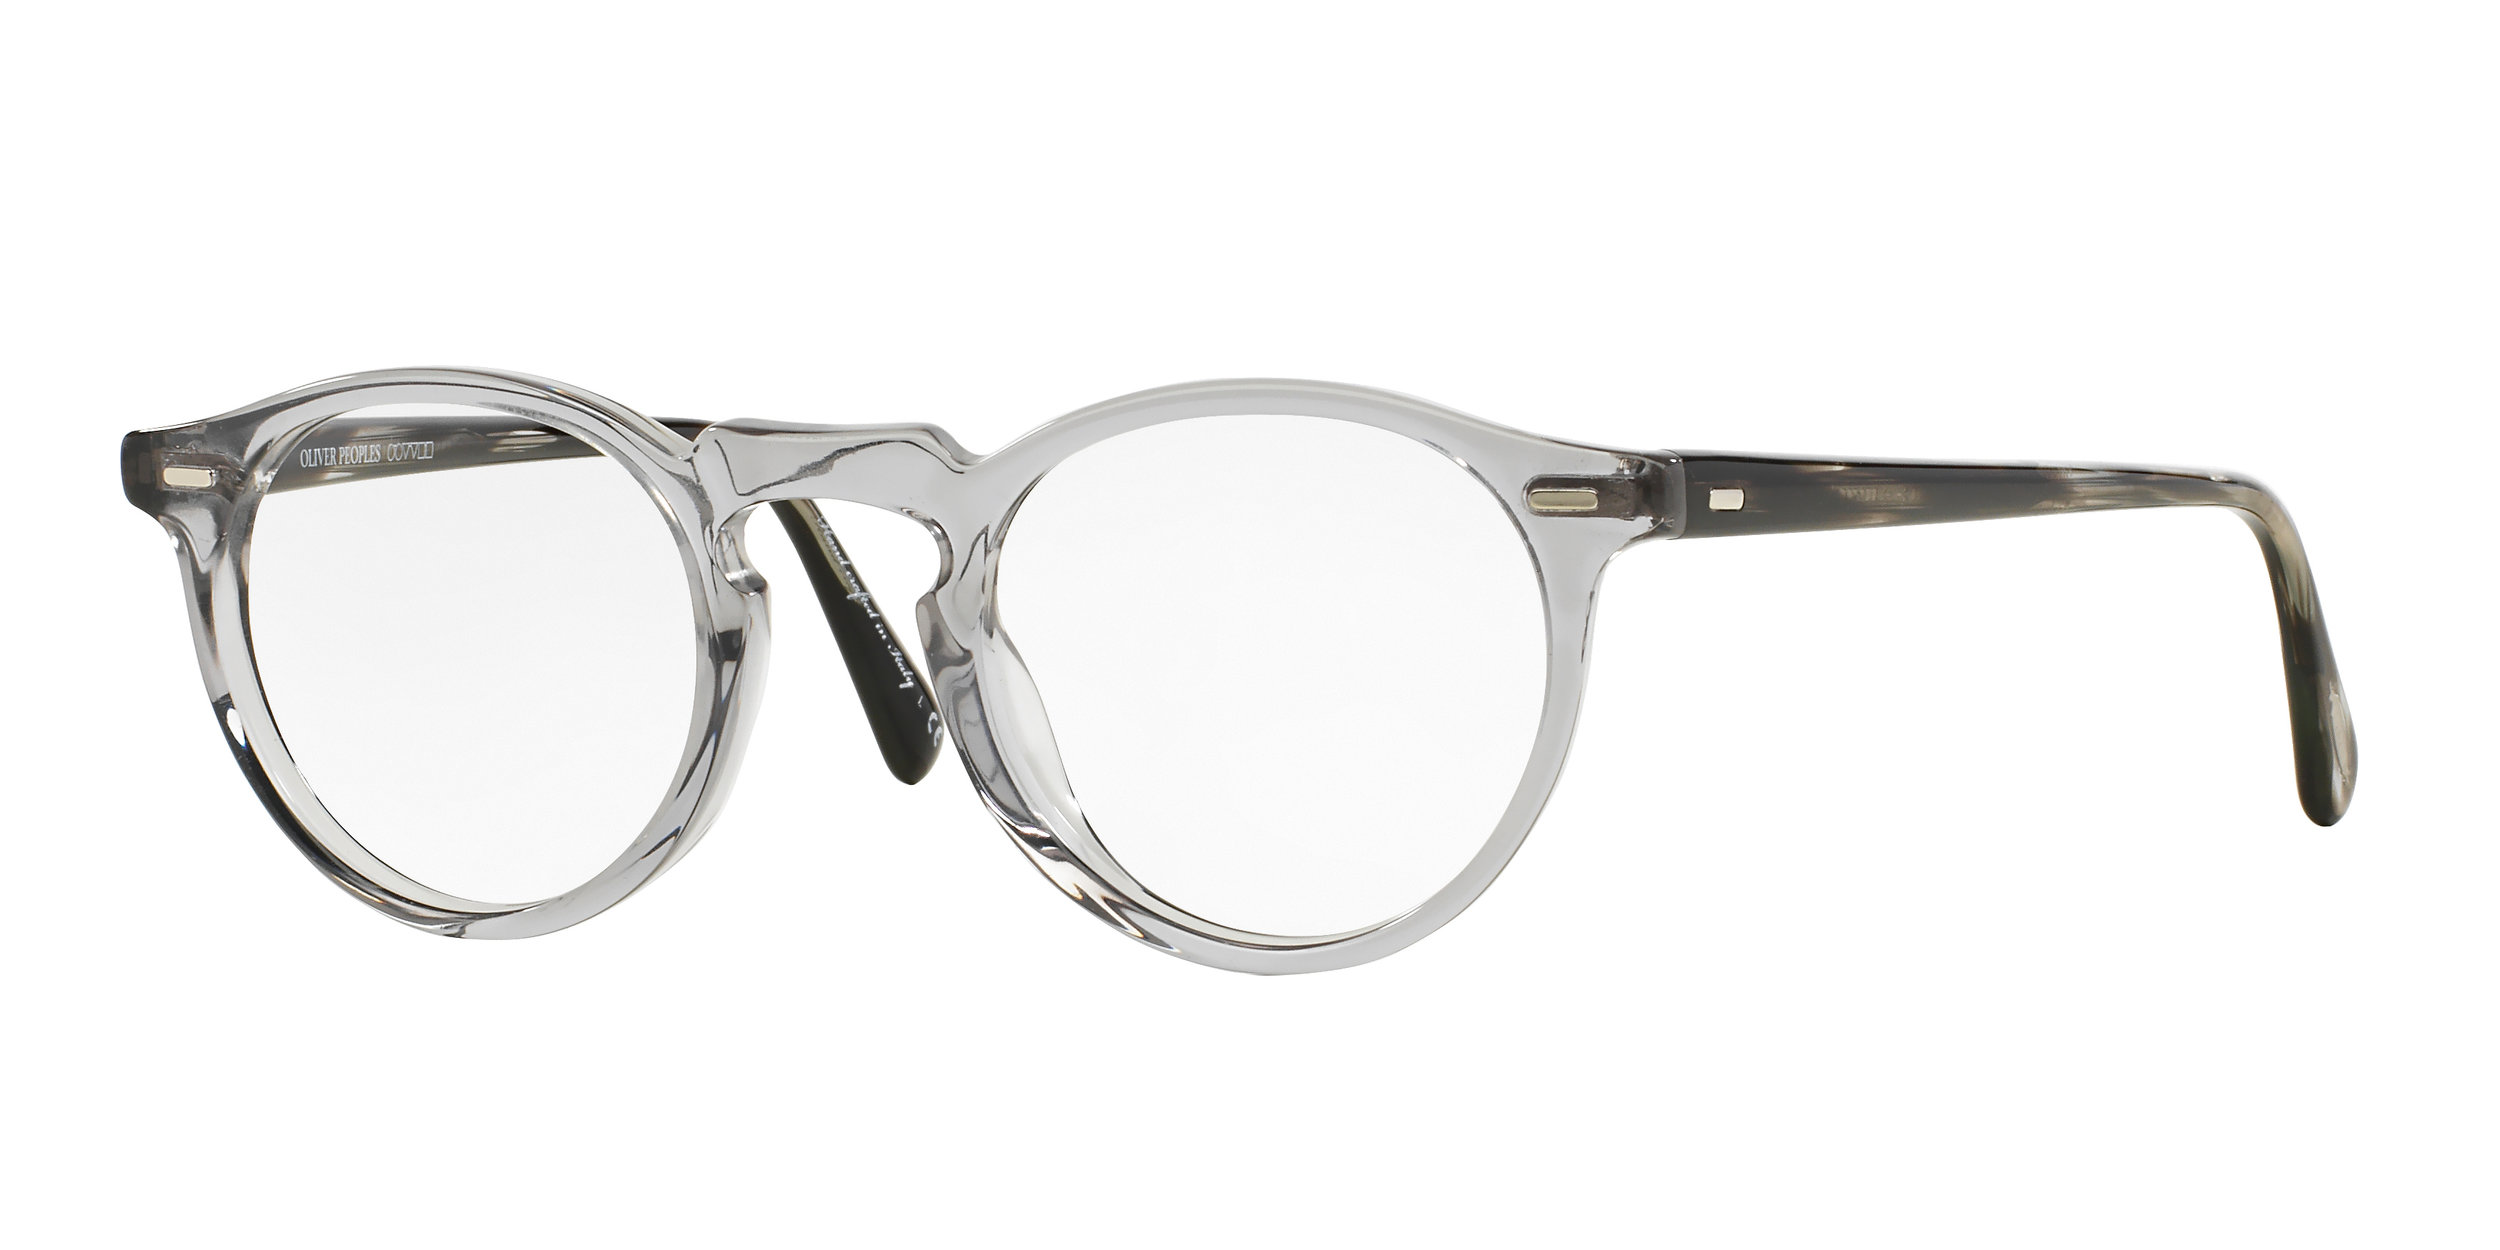 An example of Oliver Peoples style